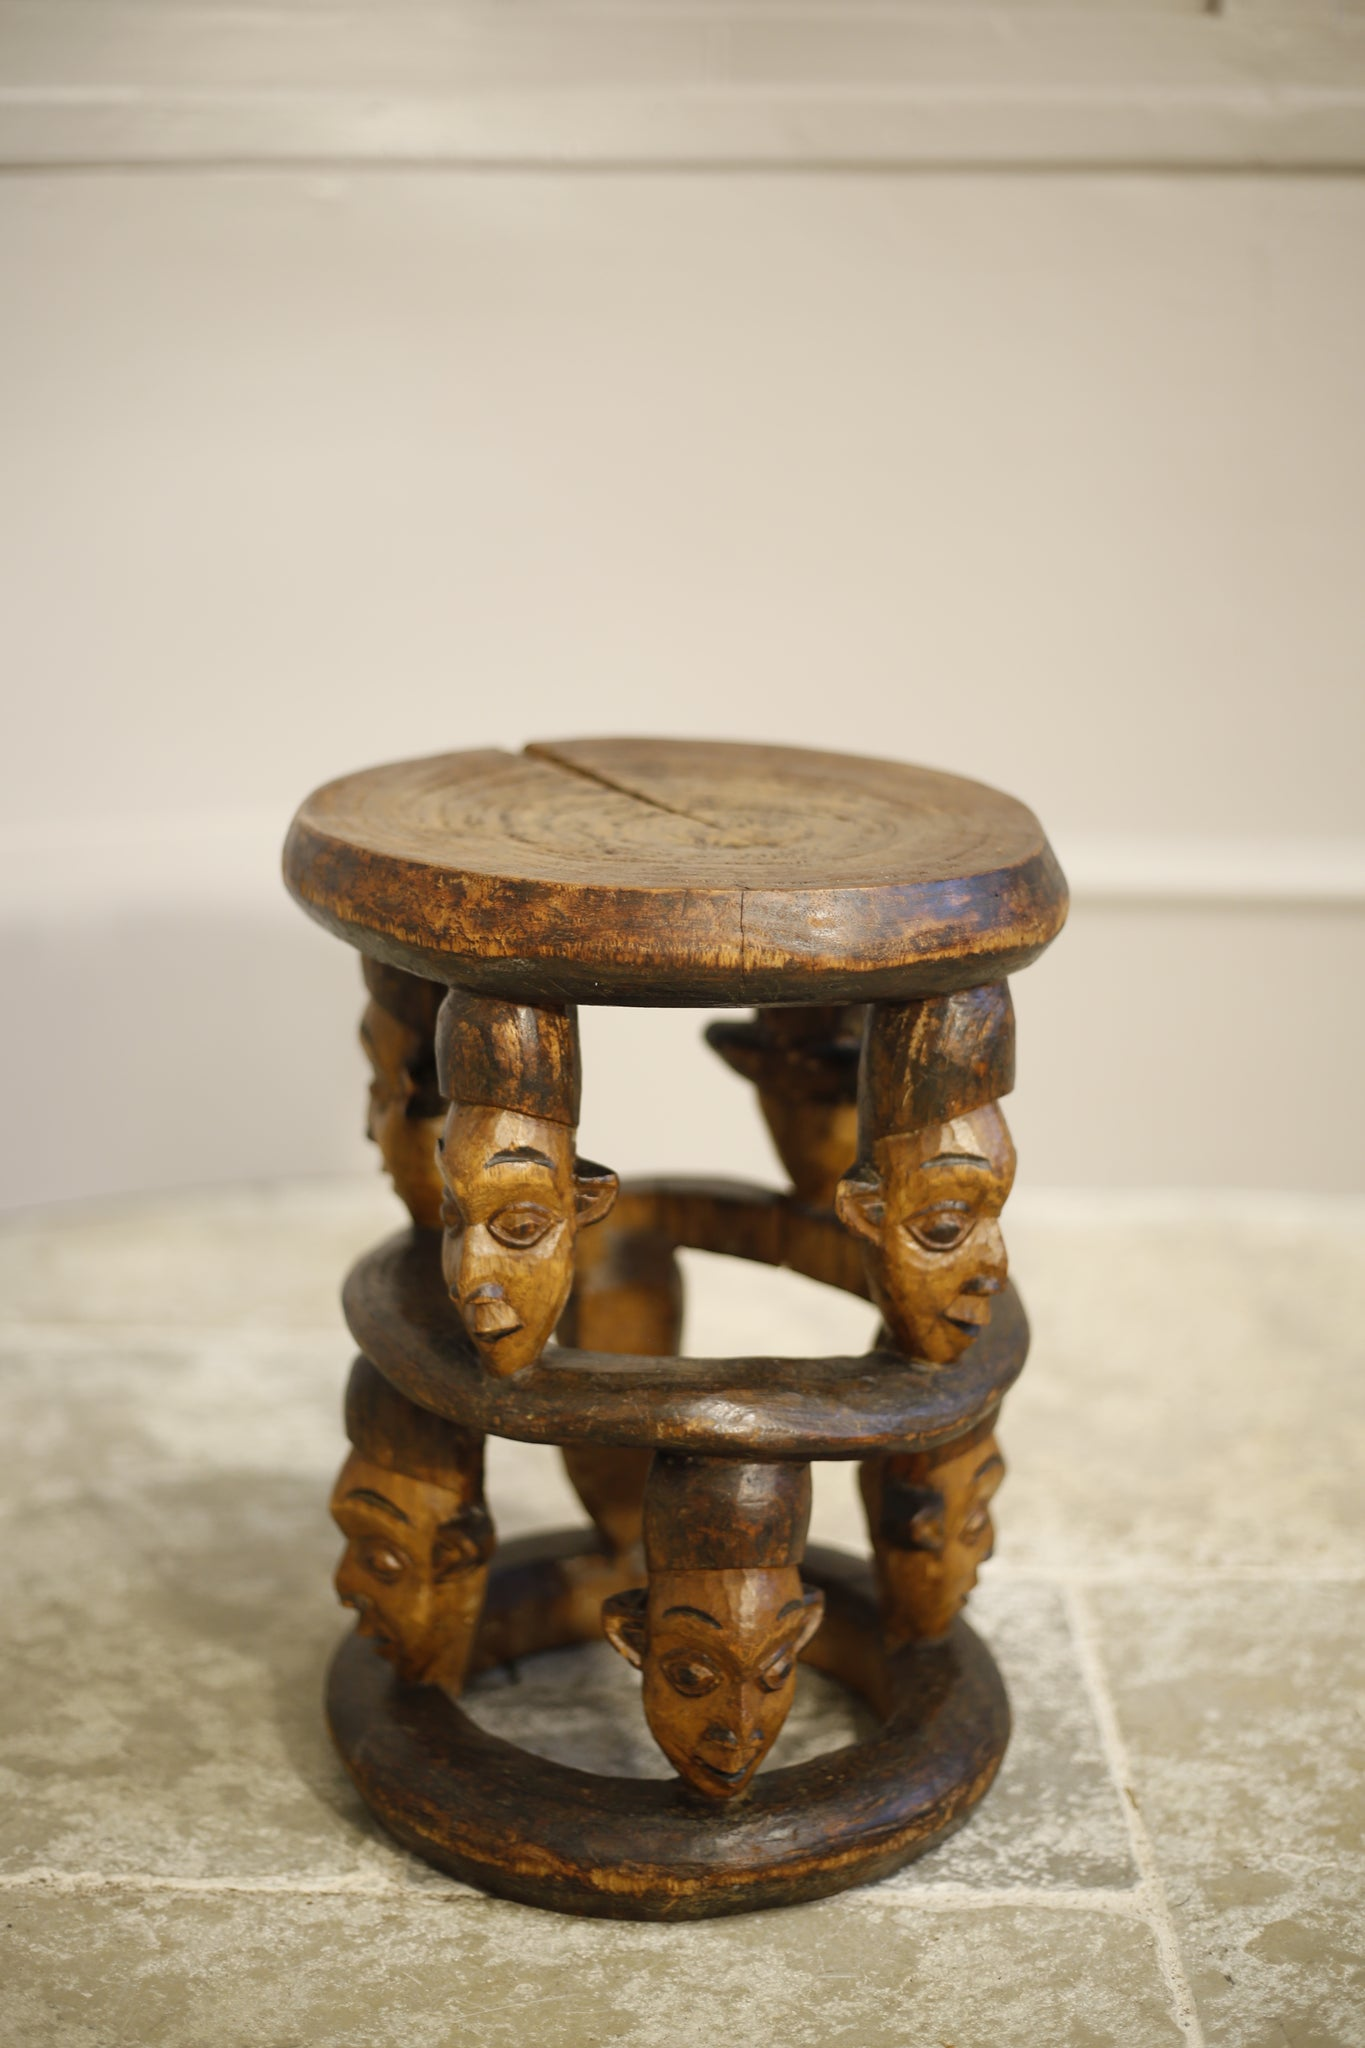 20th century African tribal head side table - TallBoy Interiors